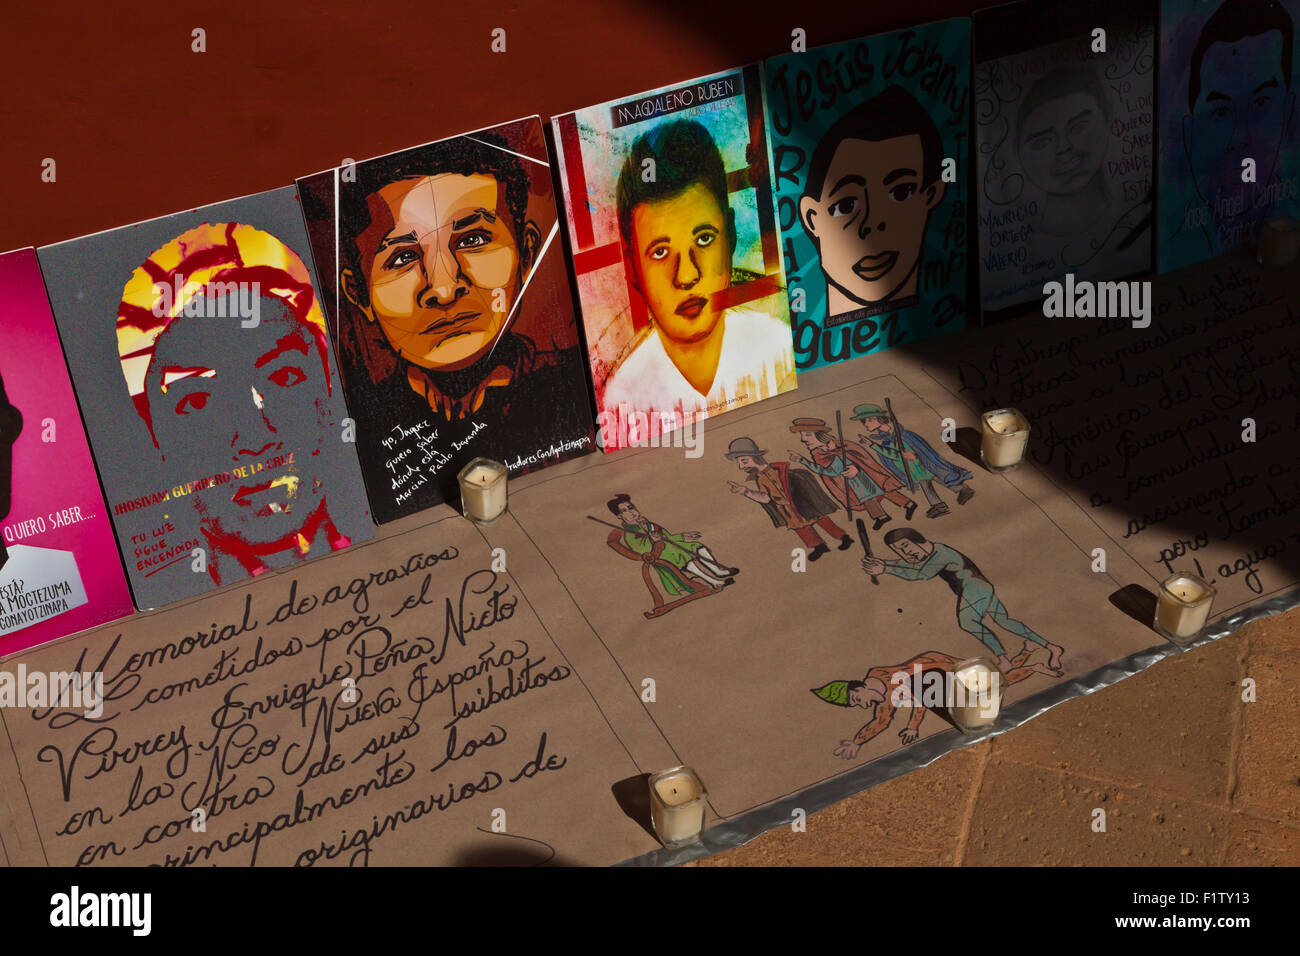 Paintings of the MEXICAN STUDENTS who were killed and dissapeard  in 2014-  OAXACA - Stock Image